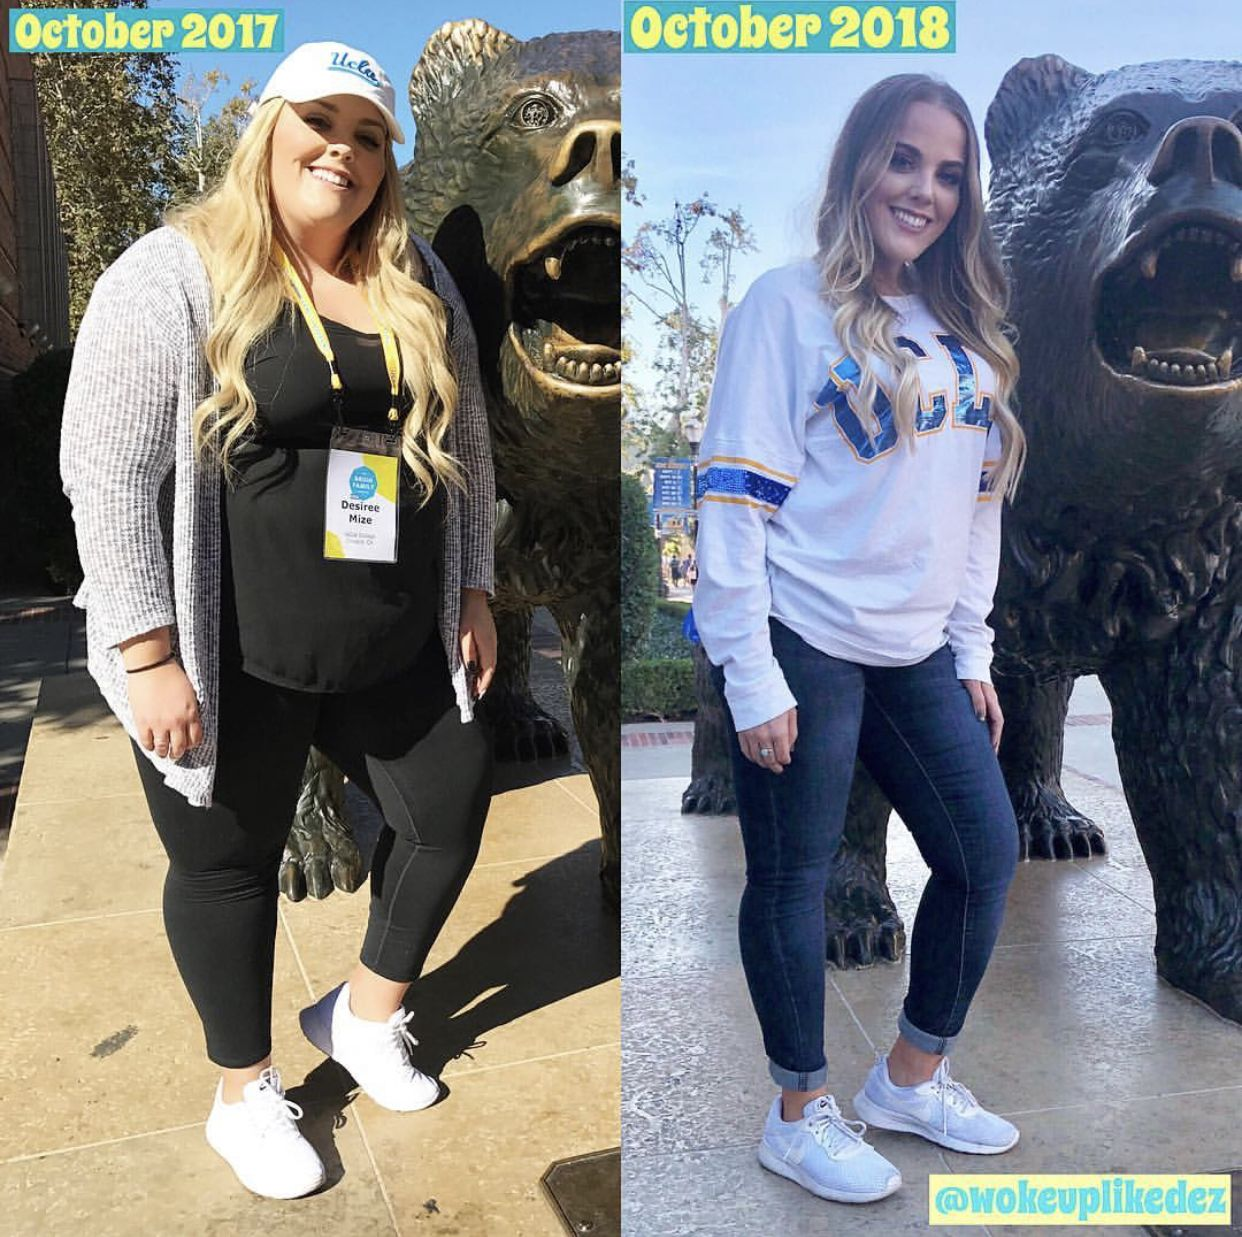 Pin on Weight loss transformations ❤️